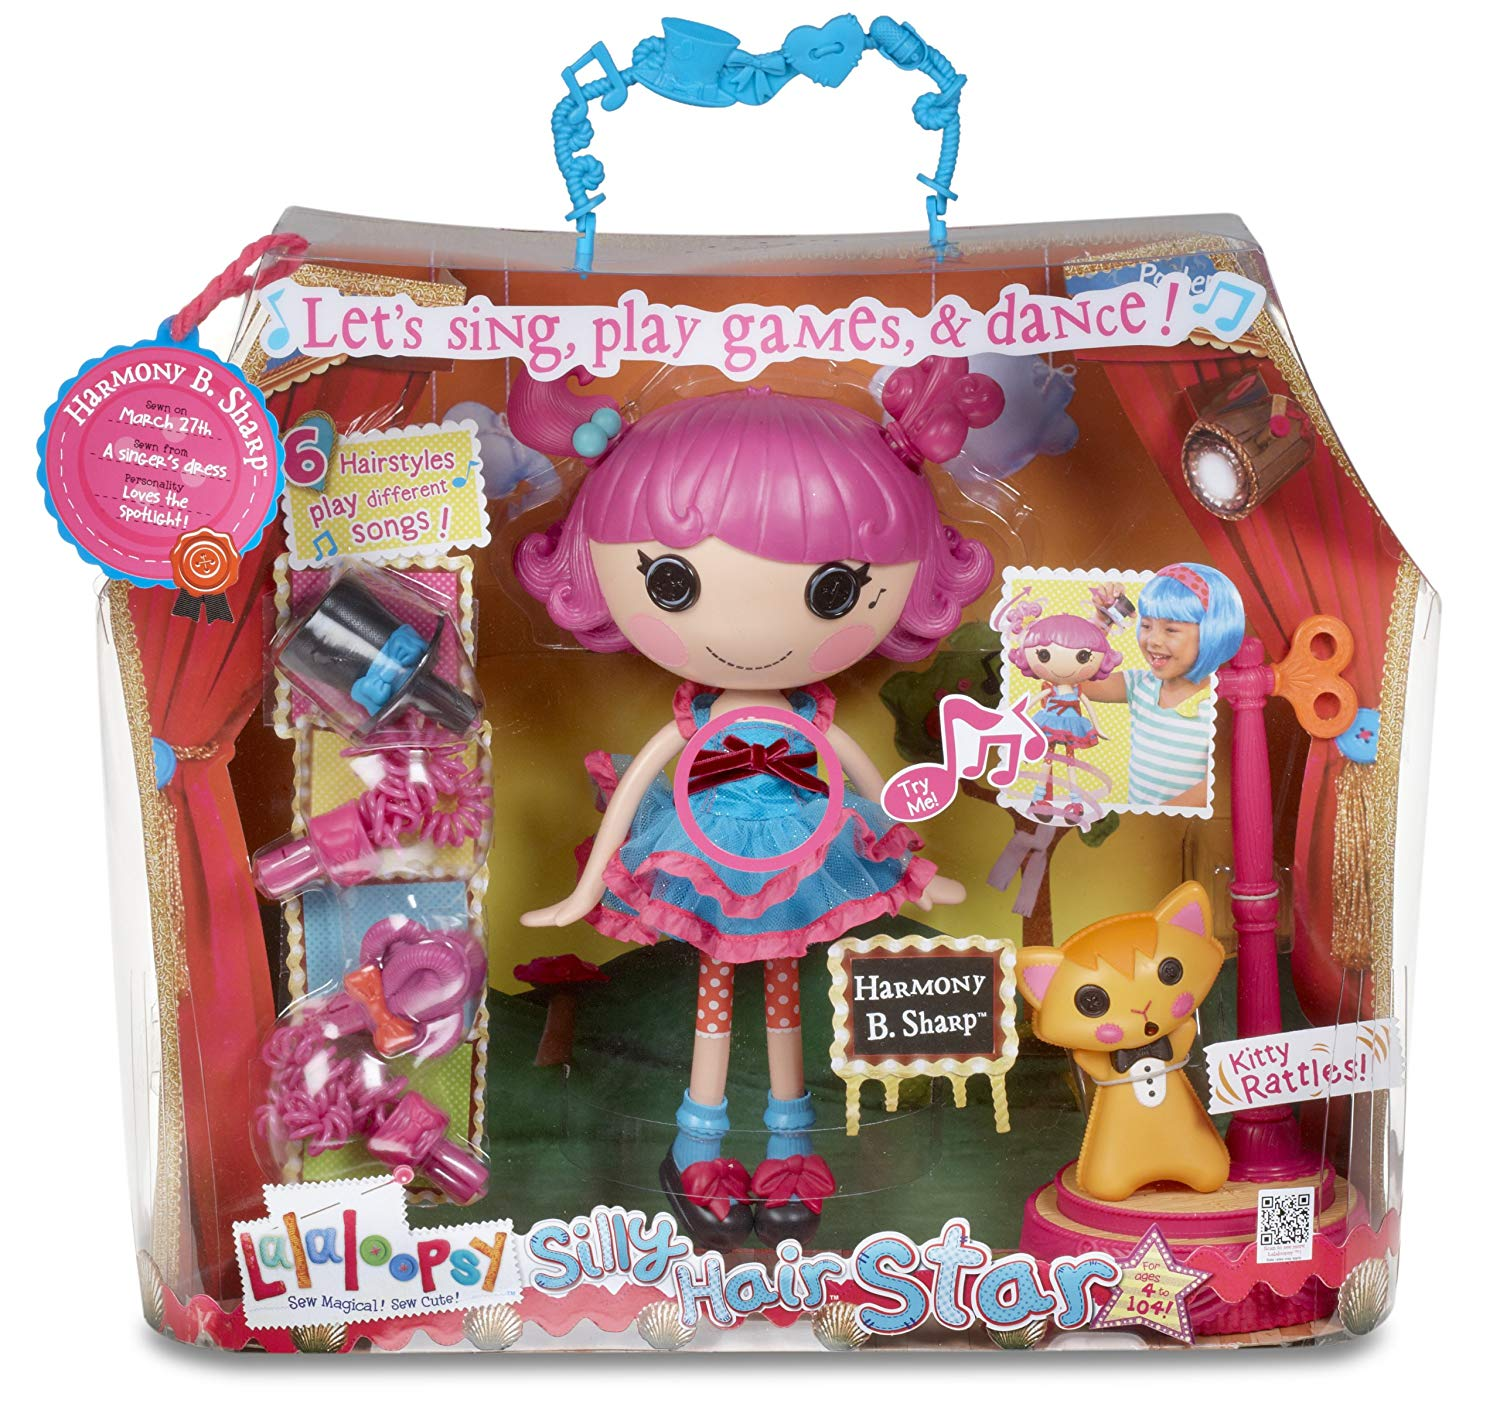 Lalaloopsy Harmony B Sharp Doll-kids toys, girls dolls, dolls, lalaloopsy, bitty button, singing dolls